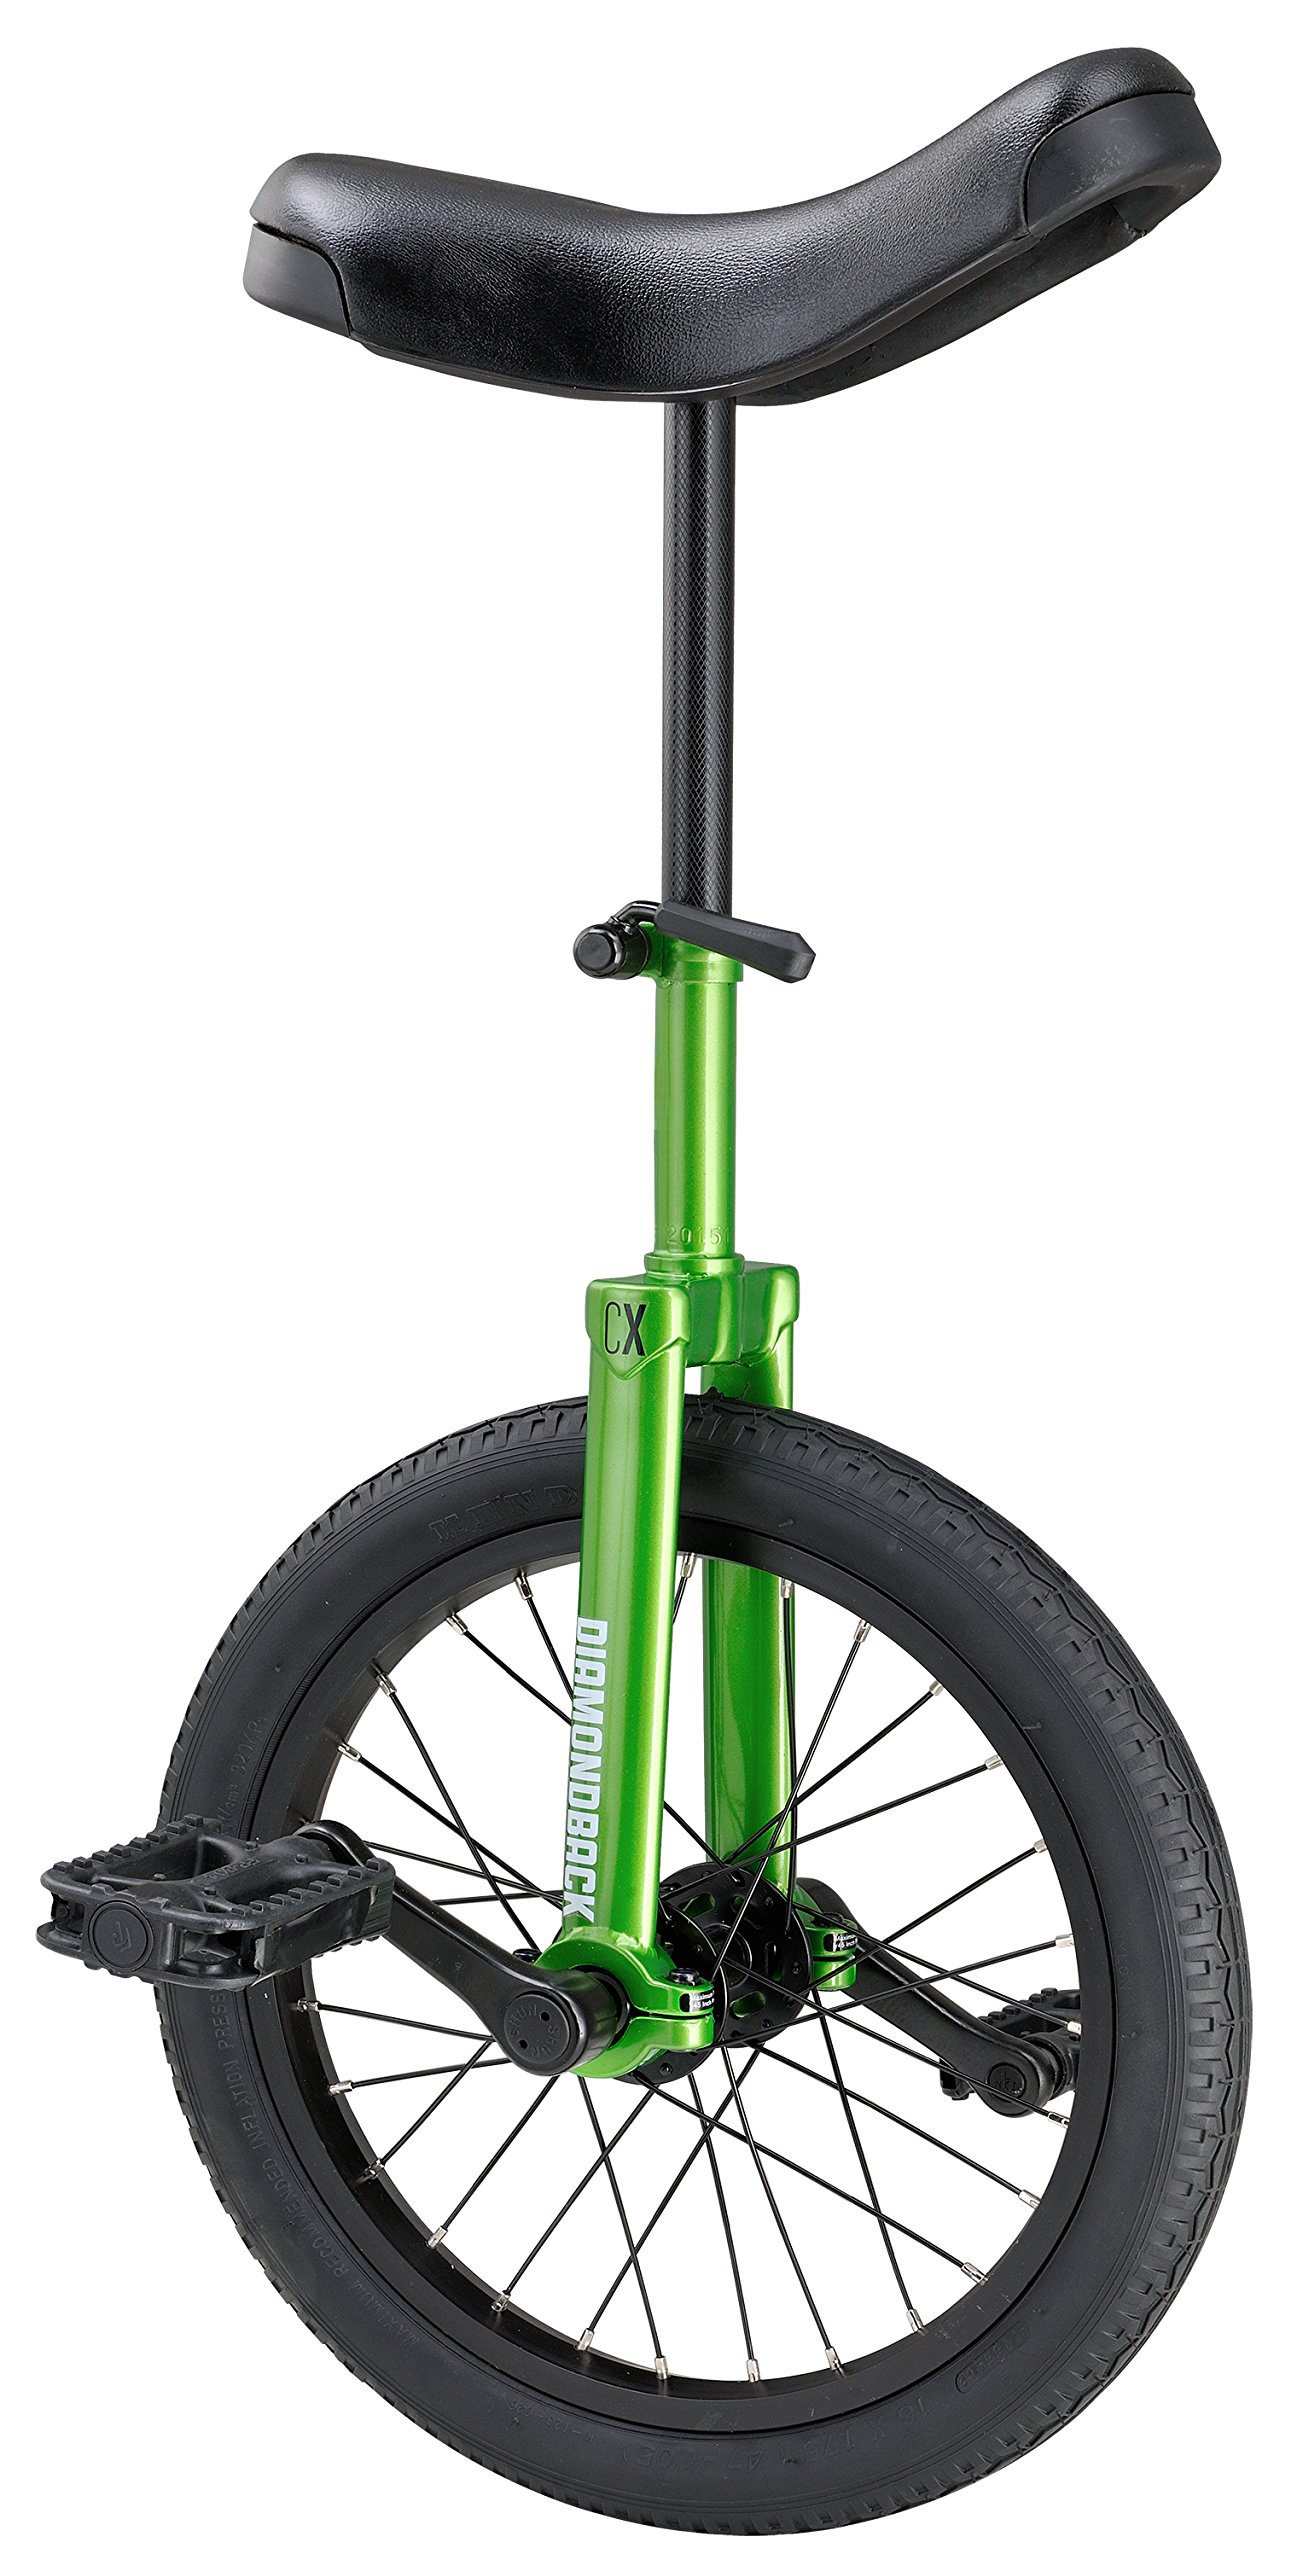 Diamondback Bicycles CX Wheel Unicycle, Green, 16''/One Size